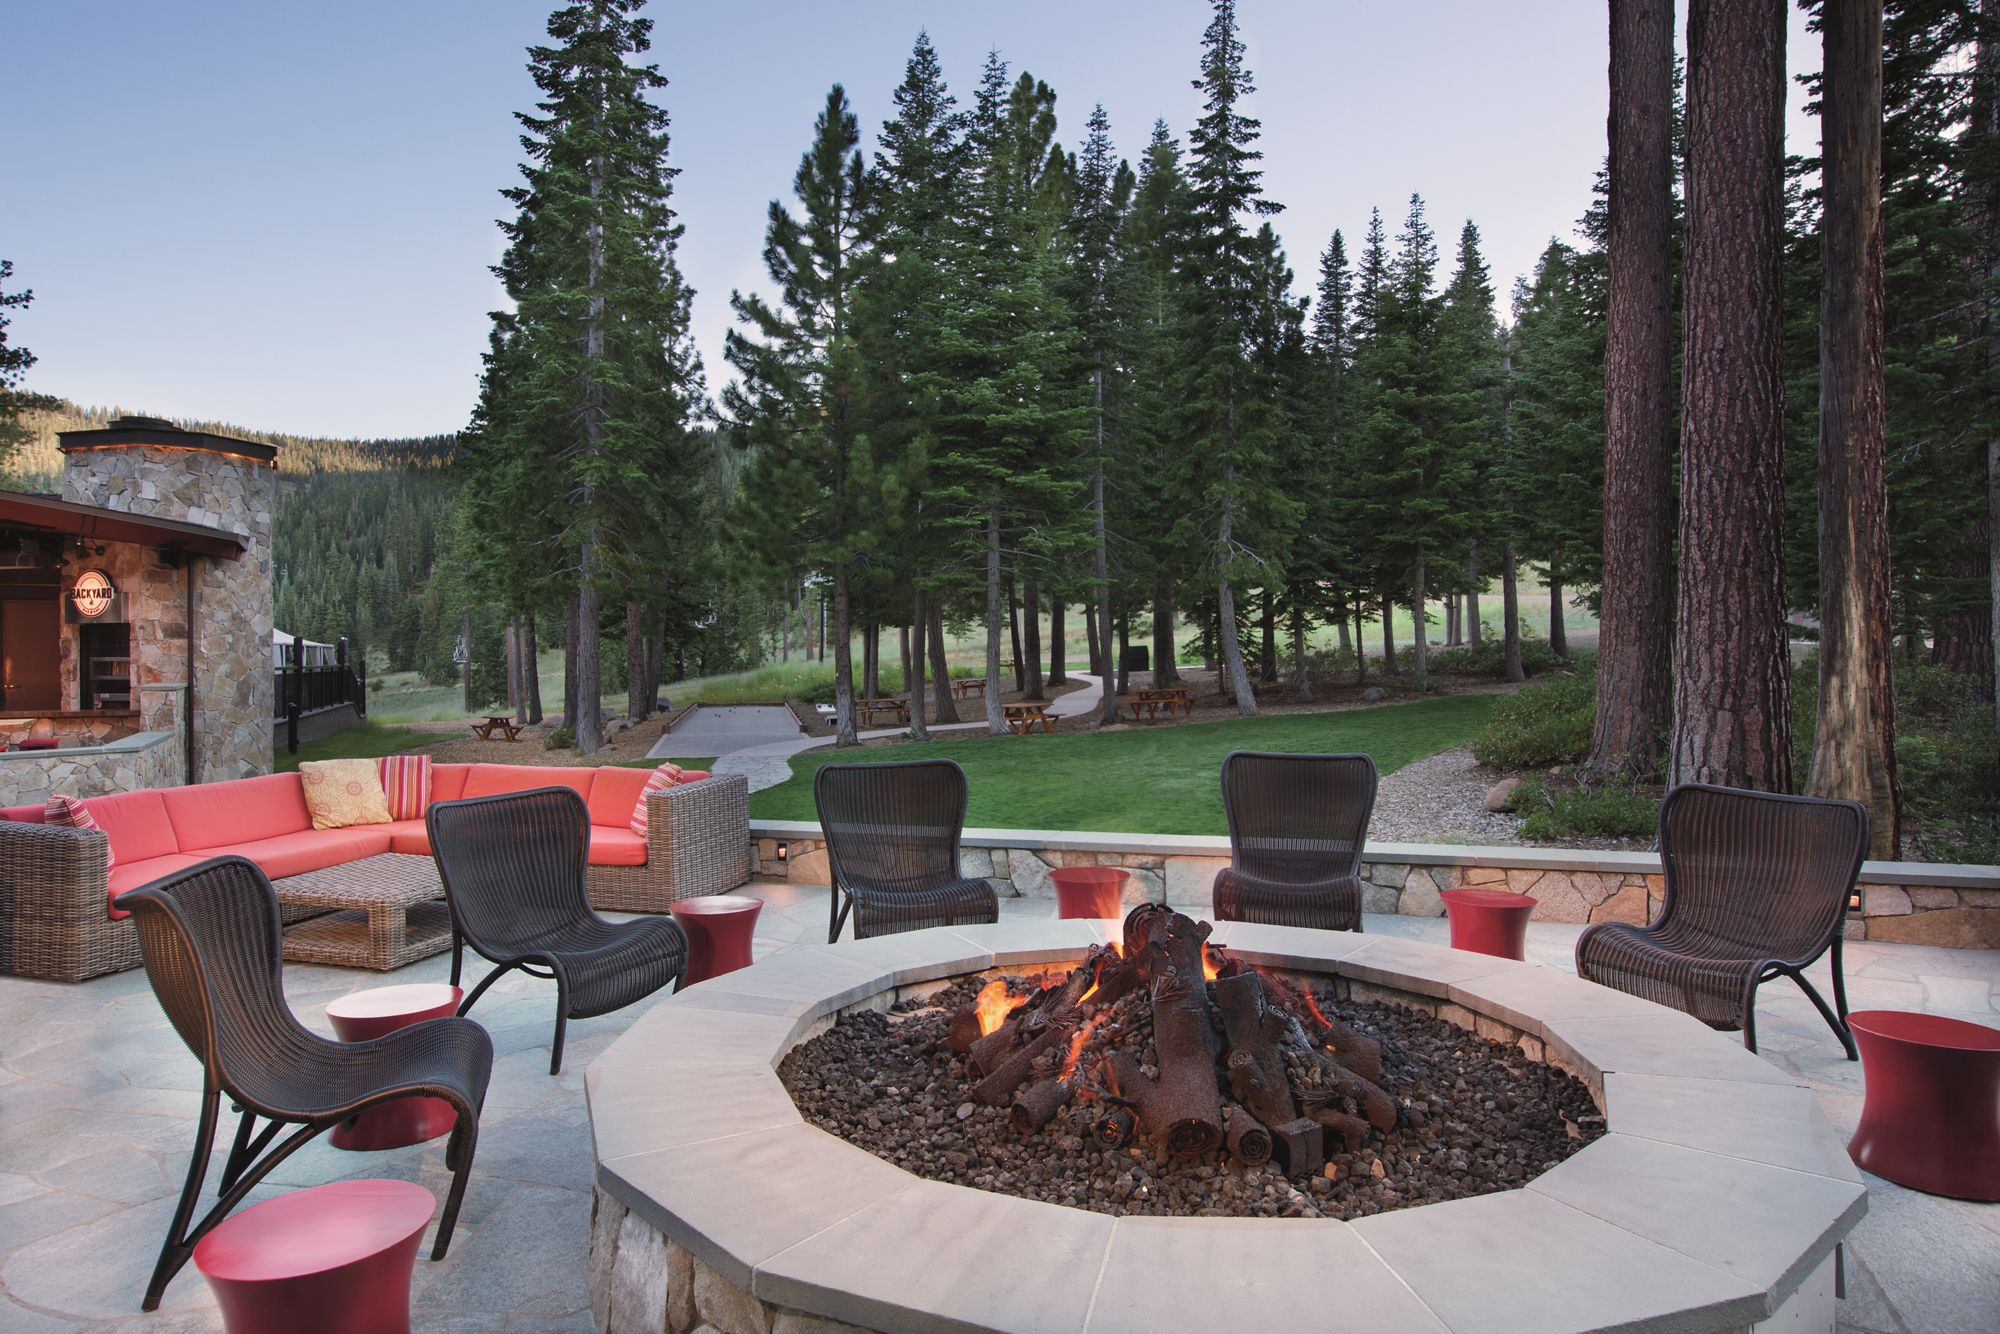 Chairs surround an outdoor fireplace